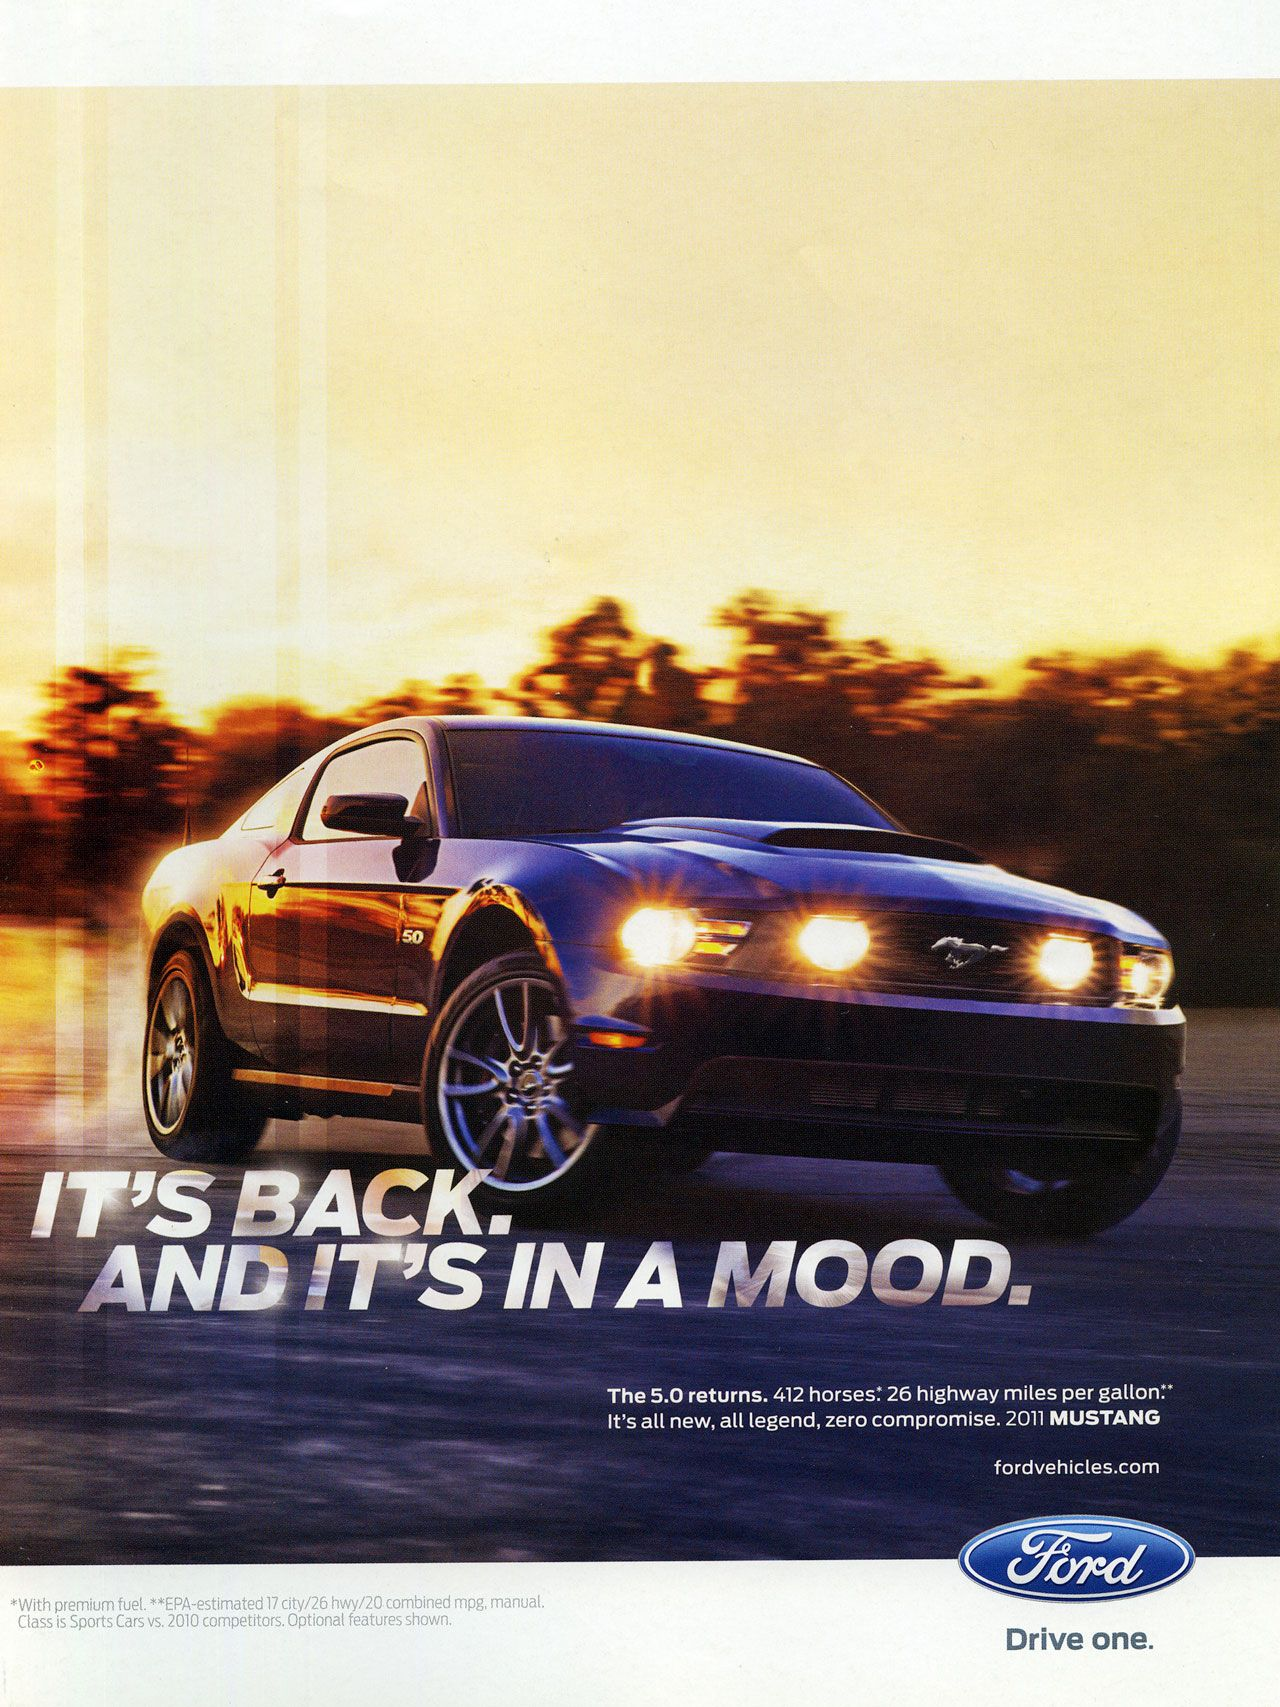 It's back. And it's in a mood. The 2011 Ford Mustang 5.0 returns. The 5.0 returns. 412 horses: 26 highway miles per gallon. It's all new, all legend, zero compromise. 2011 MUSTANG